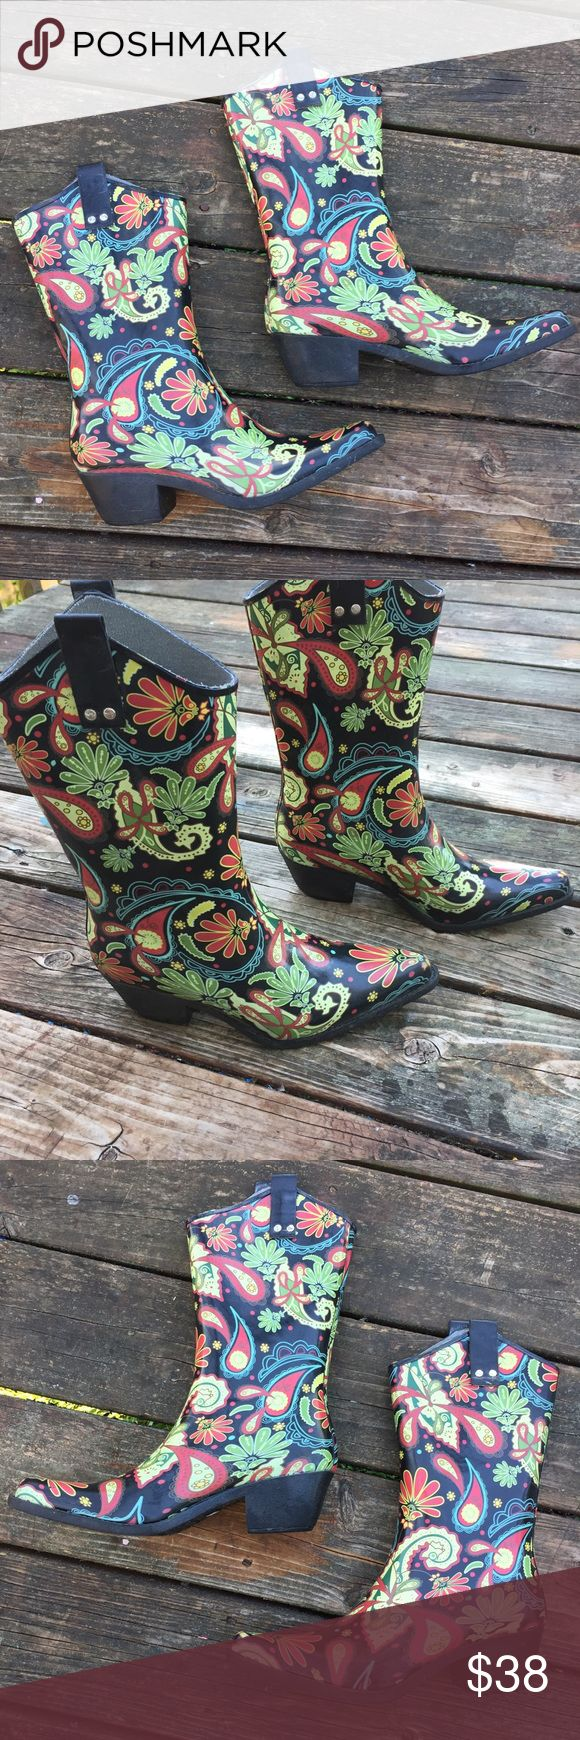 Nomad Cowgirl Rain boots Size 9 Up for sale in very good preowned condition Nomad Cowgirl Rain Boots, Size 9. Check out my closet, bundle and give me your offer! Nomad Footwear Shoes Winter & Rain Boots